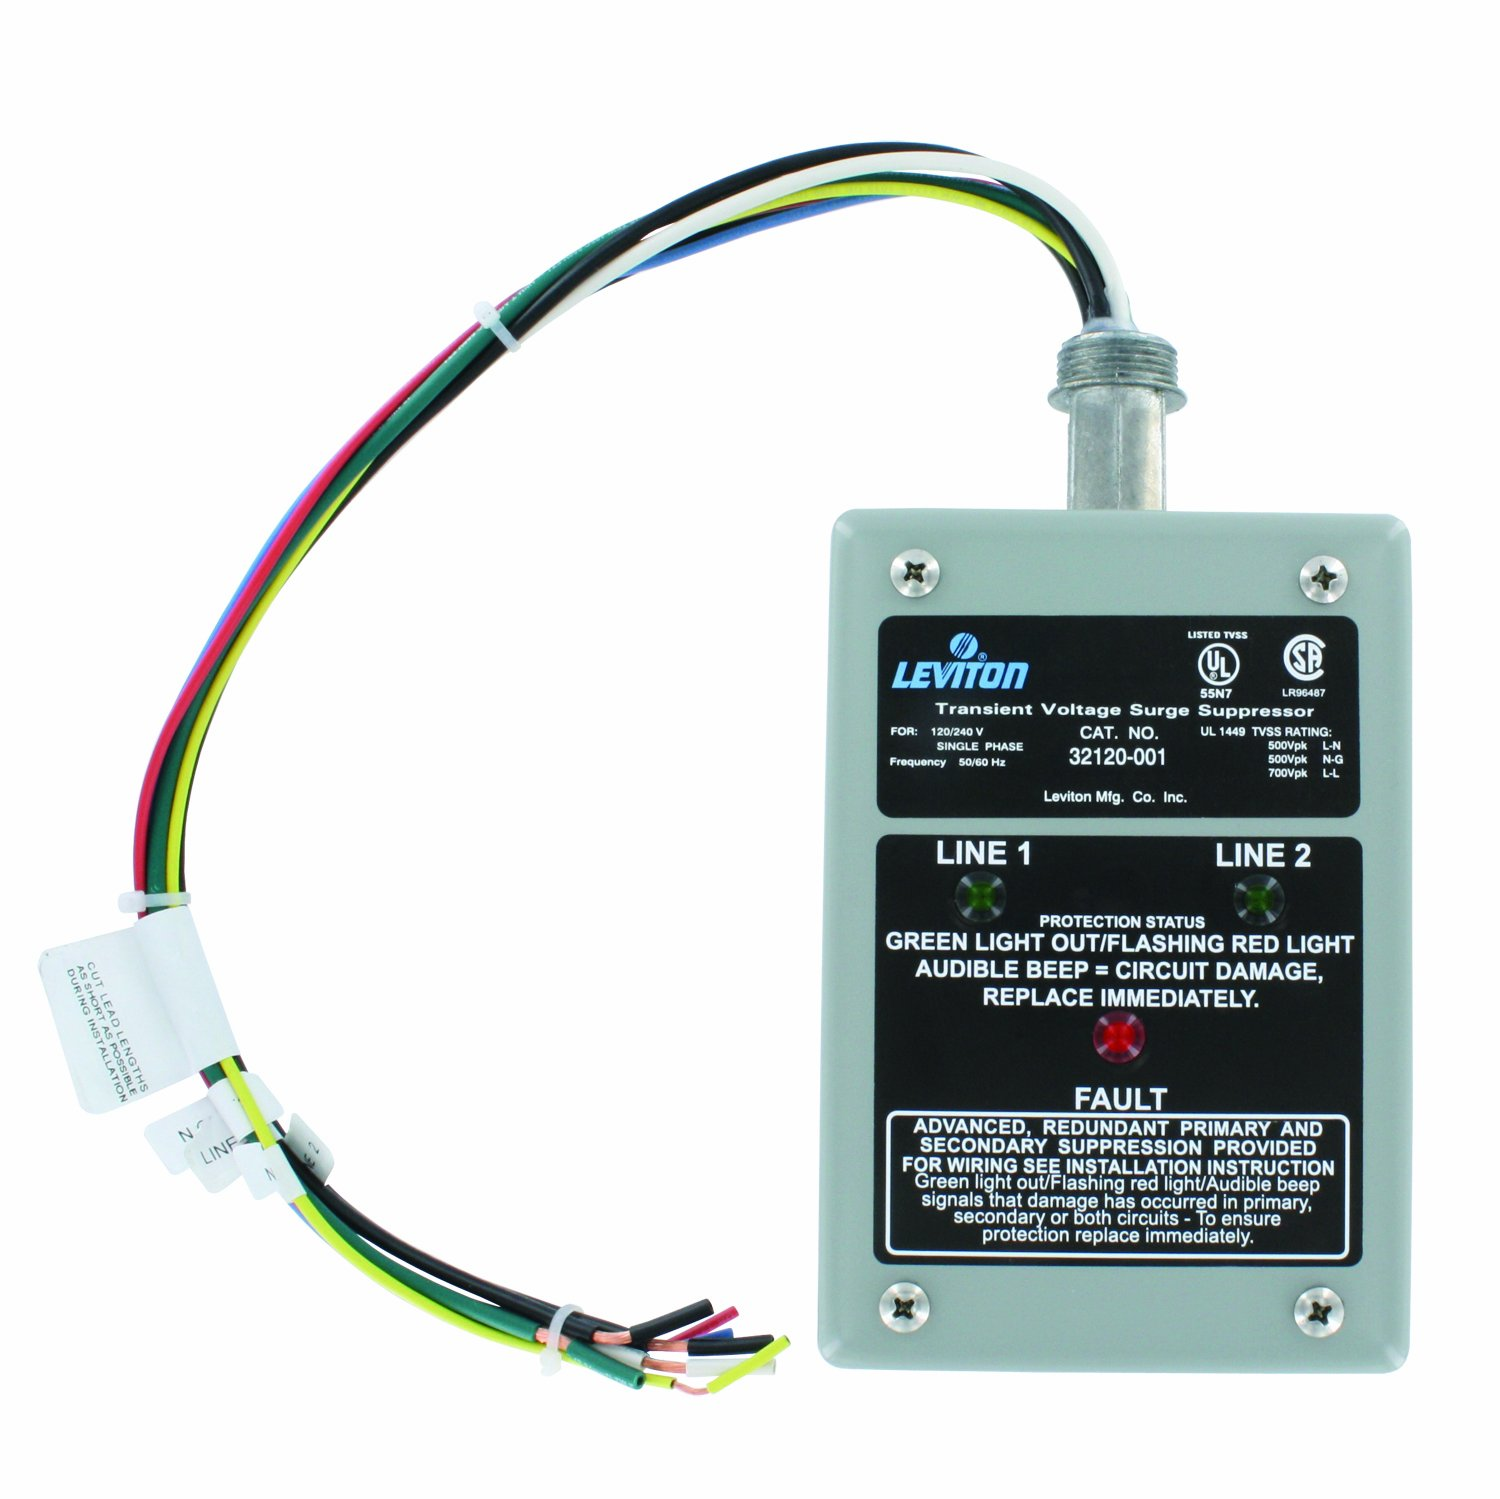 Leviton 32120 1 120 240 Volt Single Phase Surge Panel How To Repair A Damaged Electrical Wire Part 2 Dhc And X10 Compatible 80ka L N Max Current Home Improvement